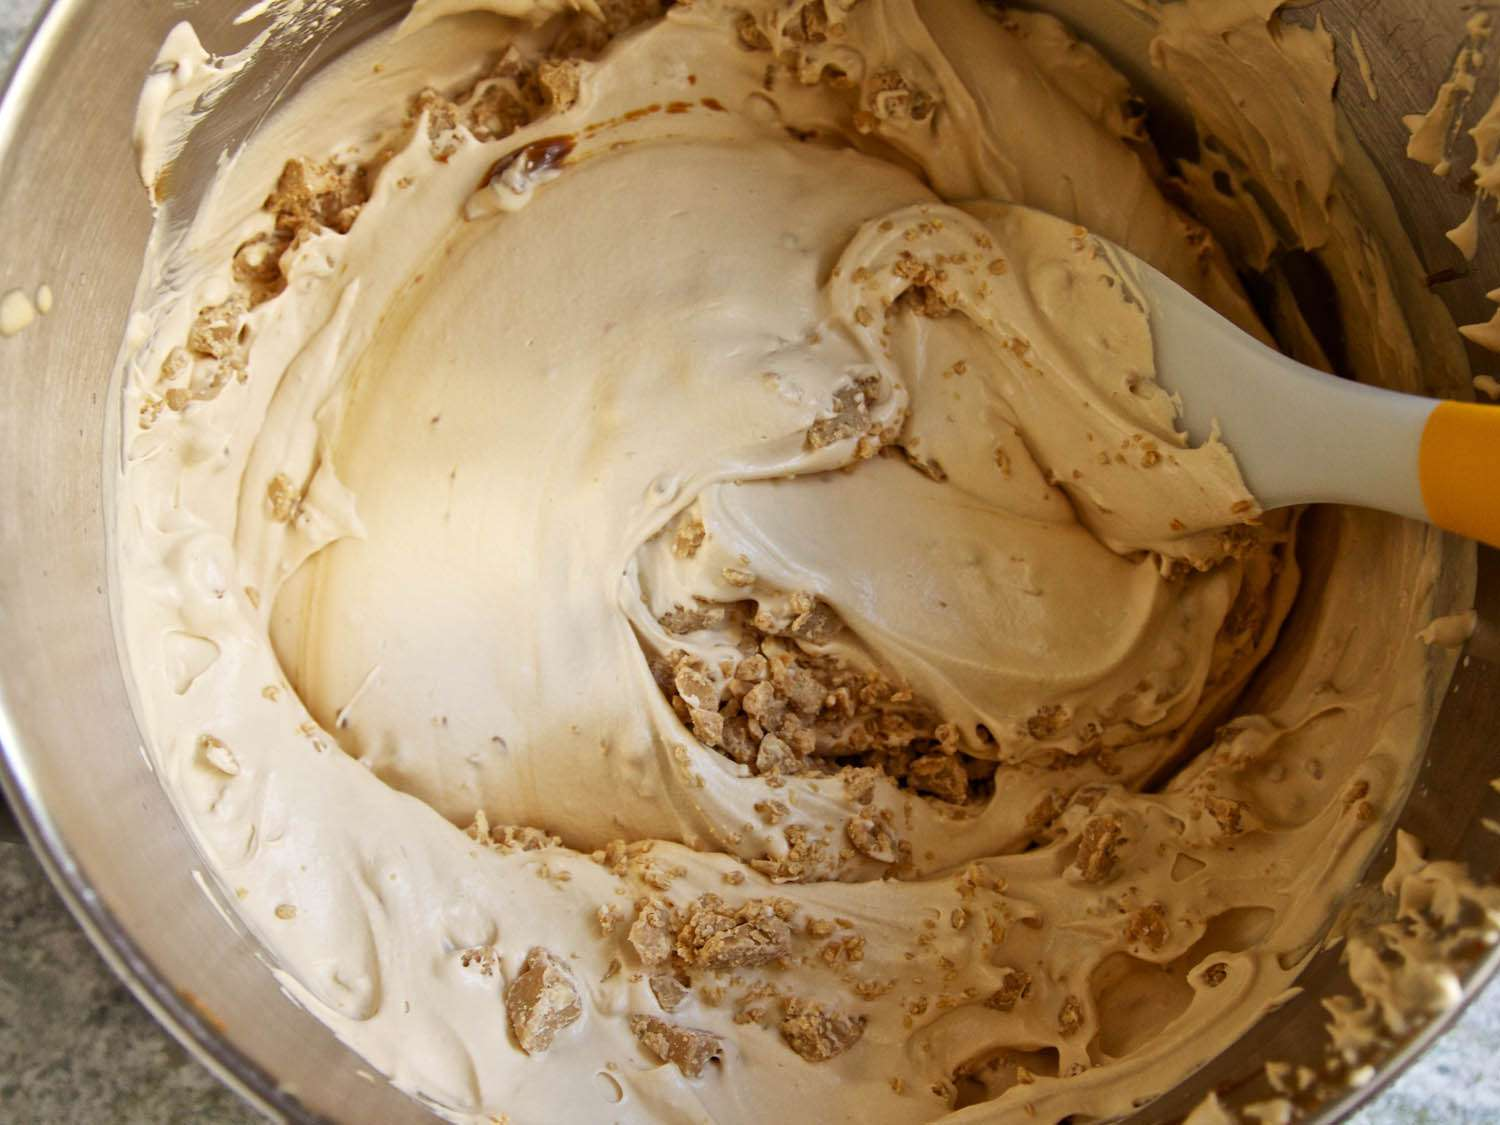 20140909-ideas-in-food-Adding-WCPB-To-Caramelized-Condensed-Ice-Cream.jpg